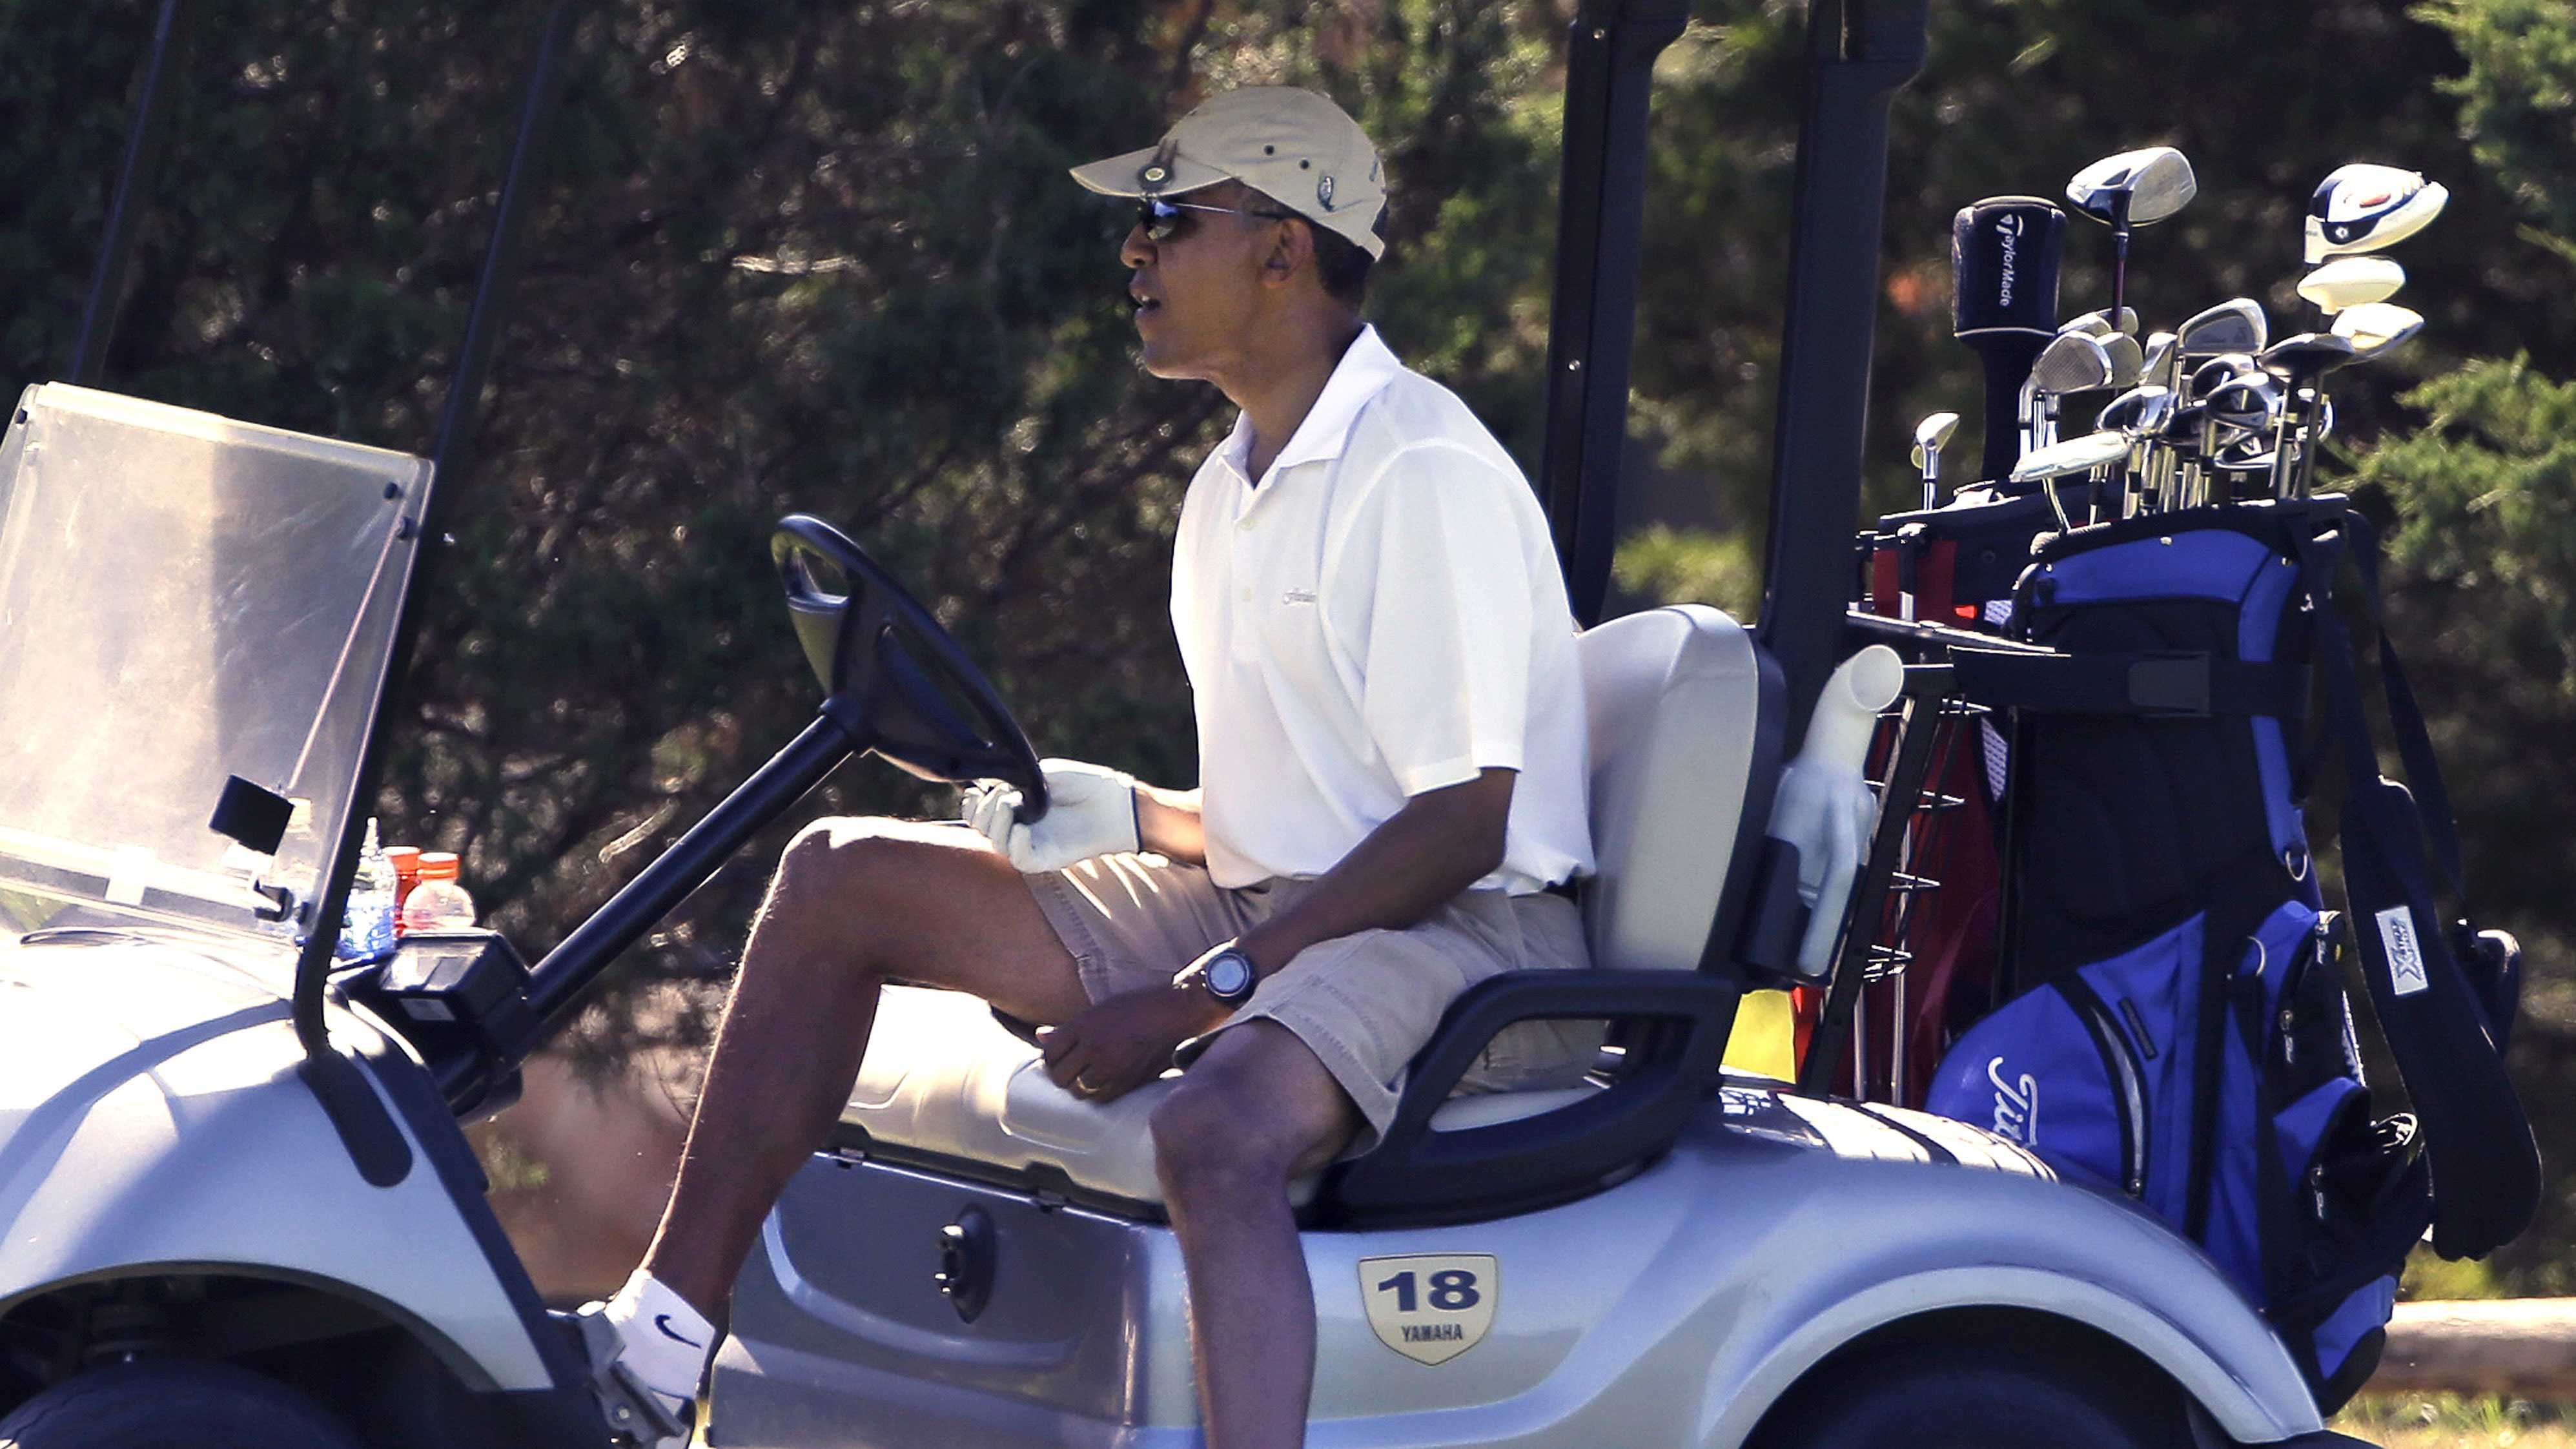 President Barack Obama steers his cart while golfing at Farm Neck Golf Club in Oak Bluffs, Mass., on the island of Martha's Vineyard Sunday, Aug. 11, 2013.